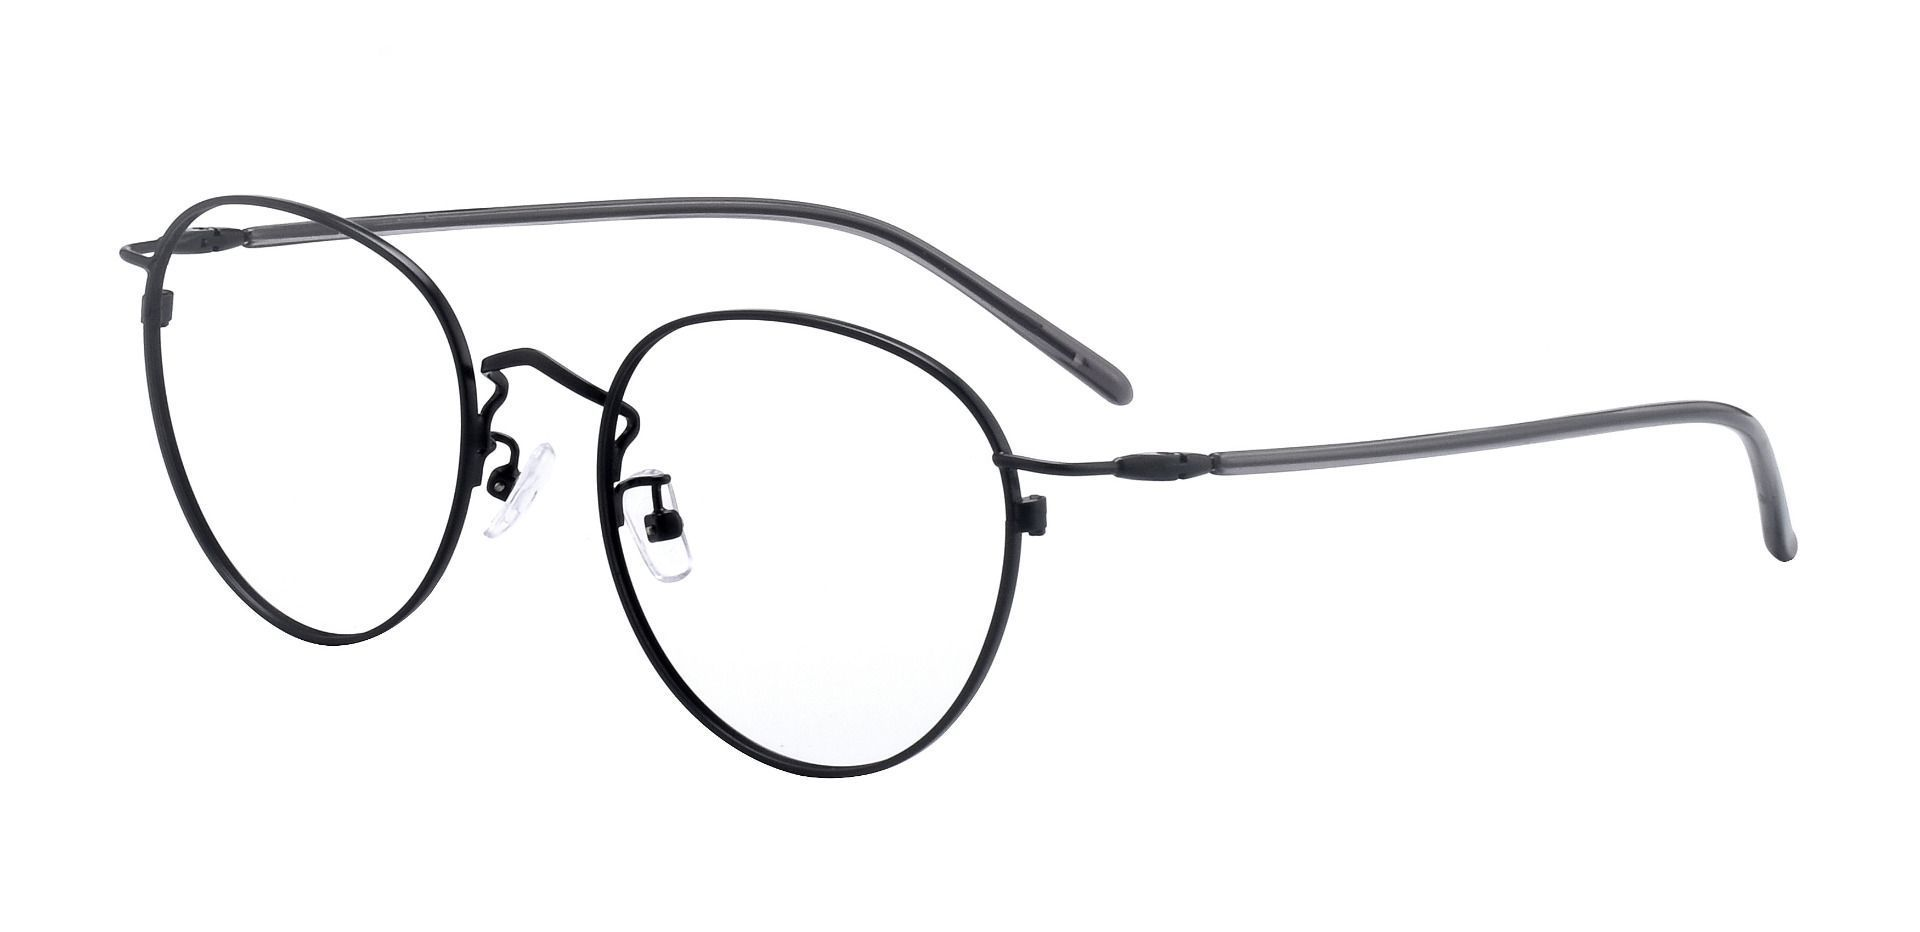 Ortiz Oval Prescription Glasses - Black